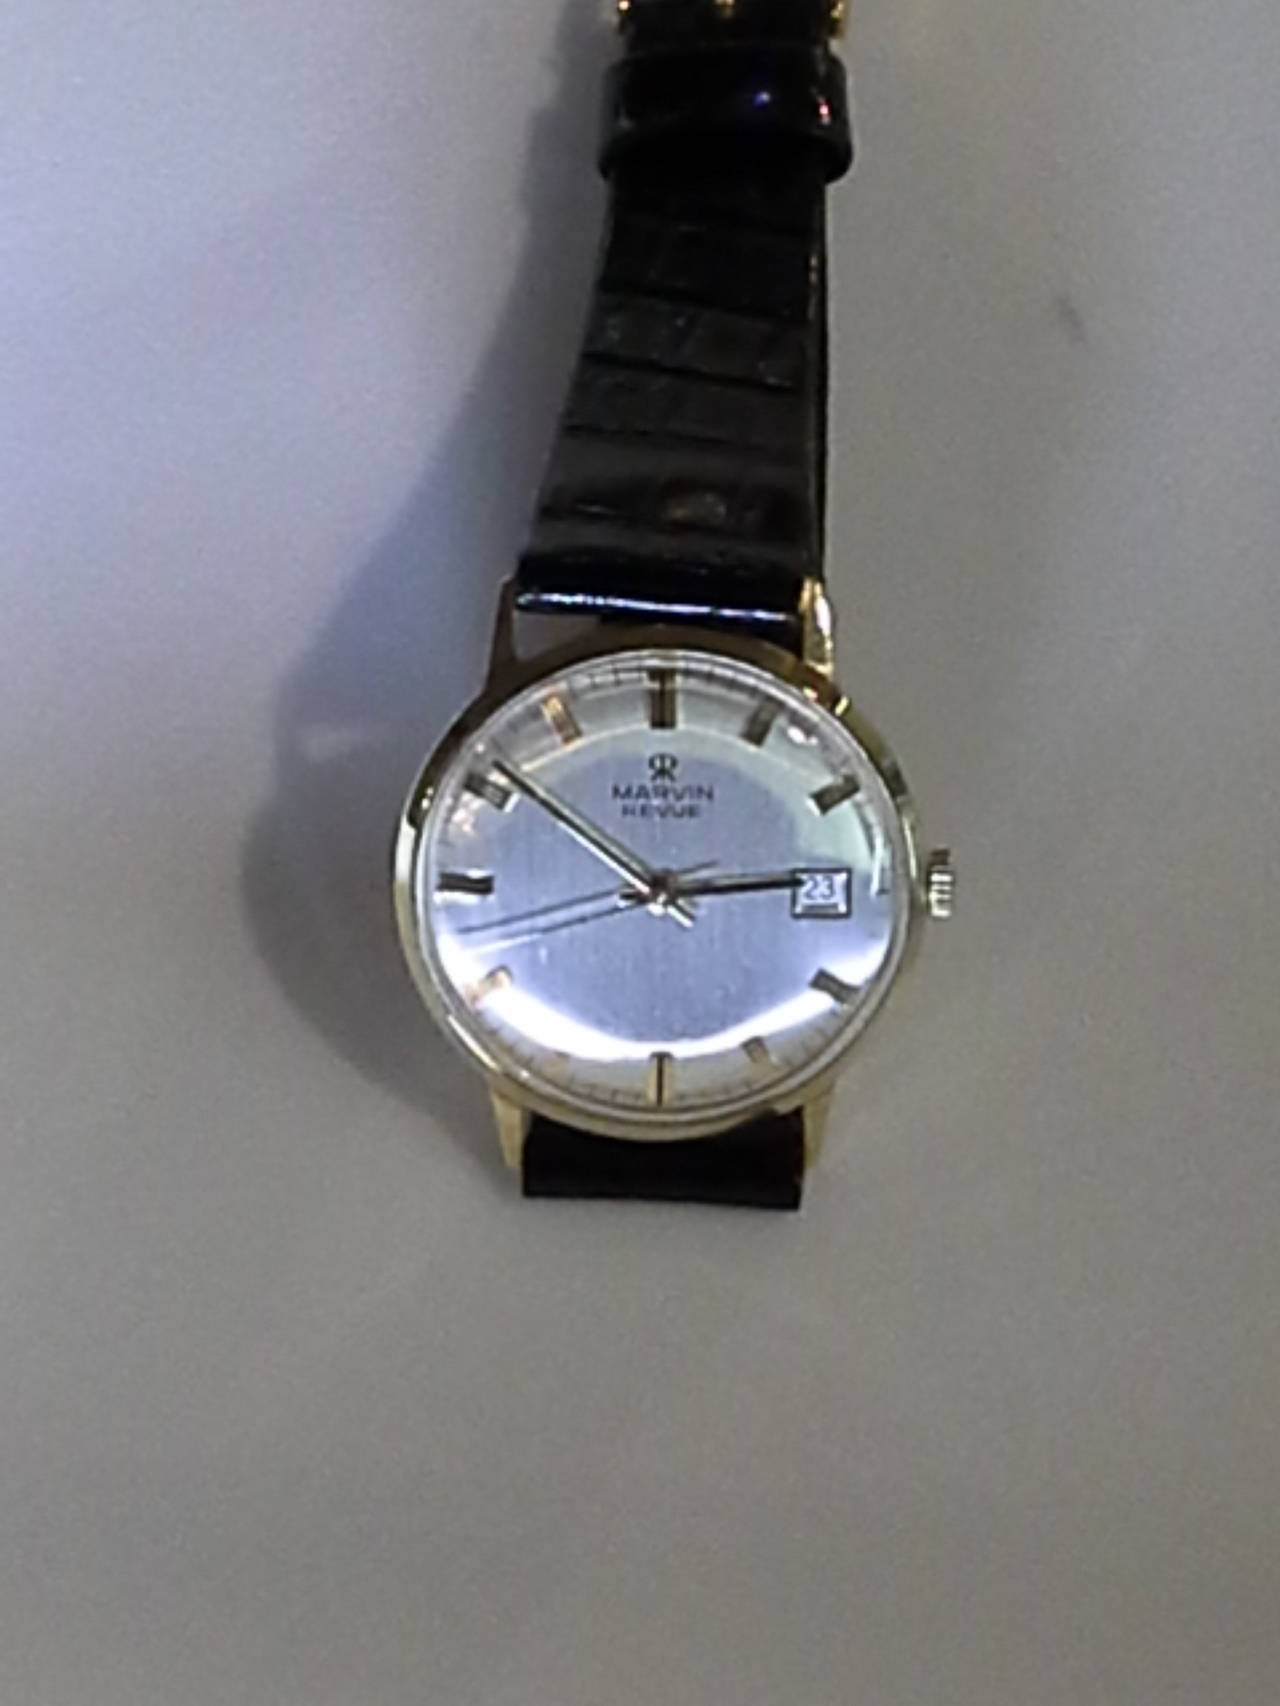 Marvin Revue Day or Date Gold Wristwatch with Original Bracelet in Original Box 4